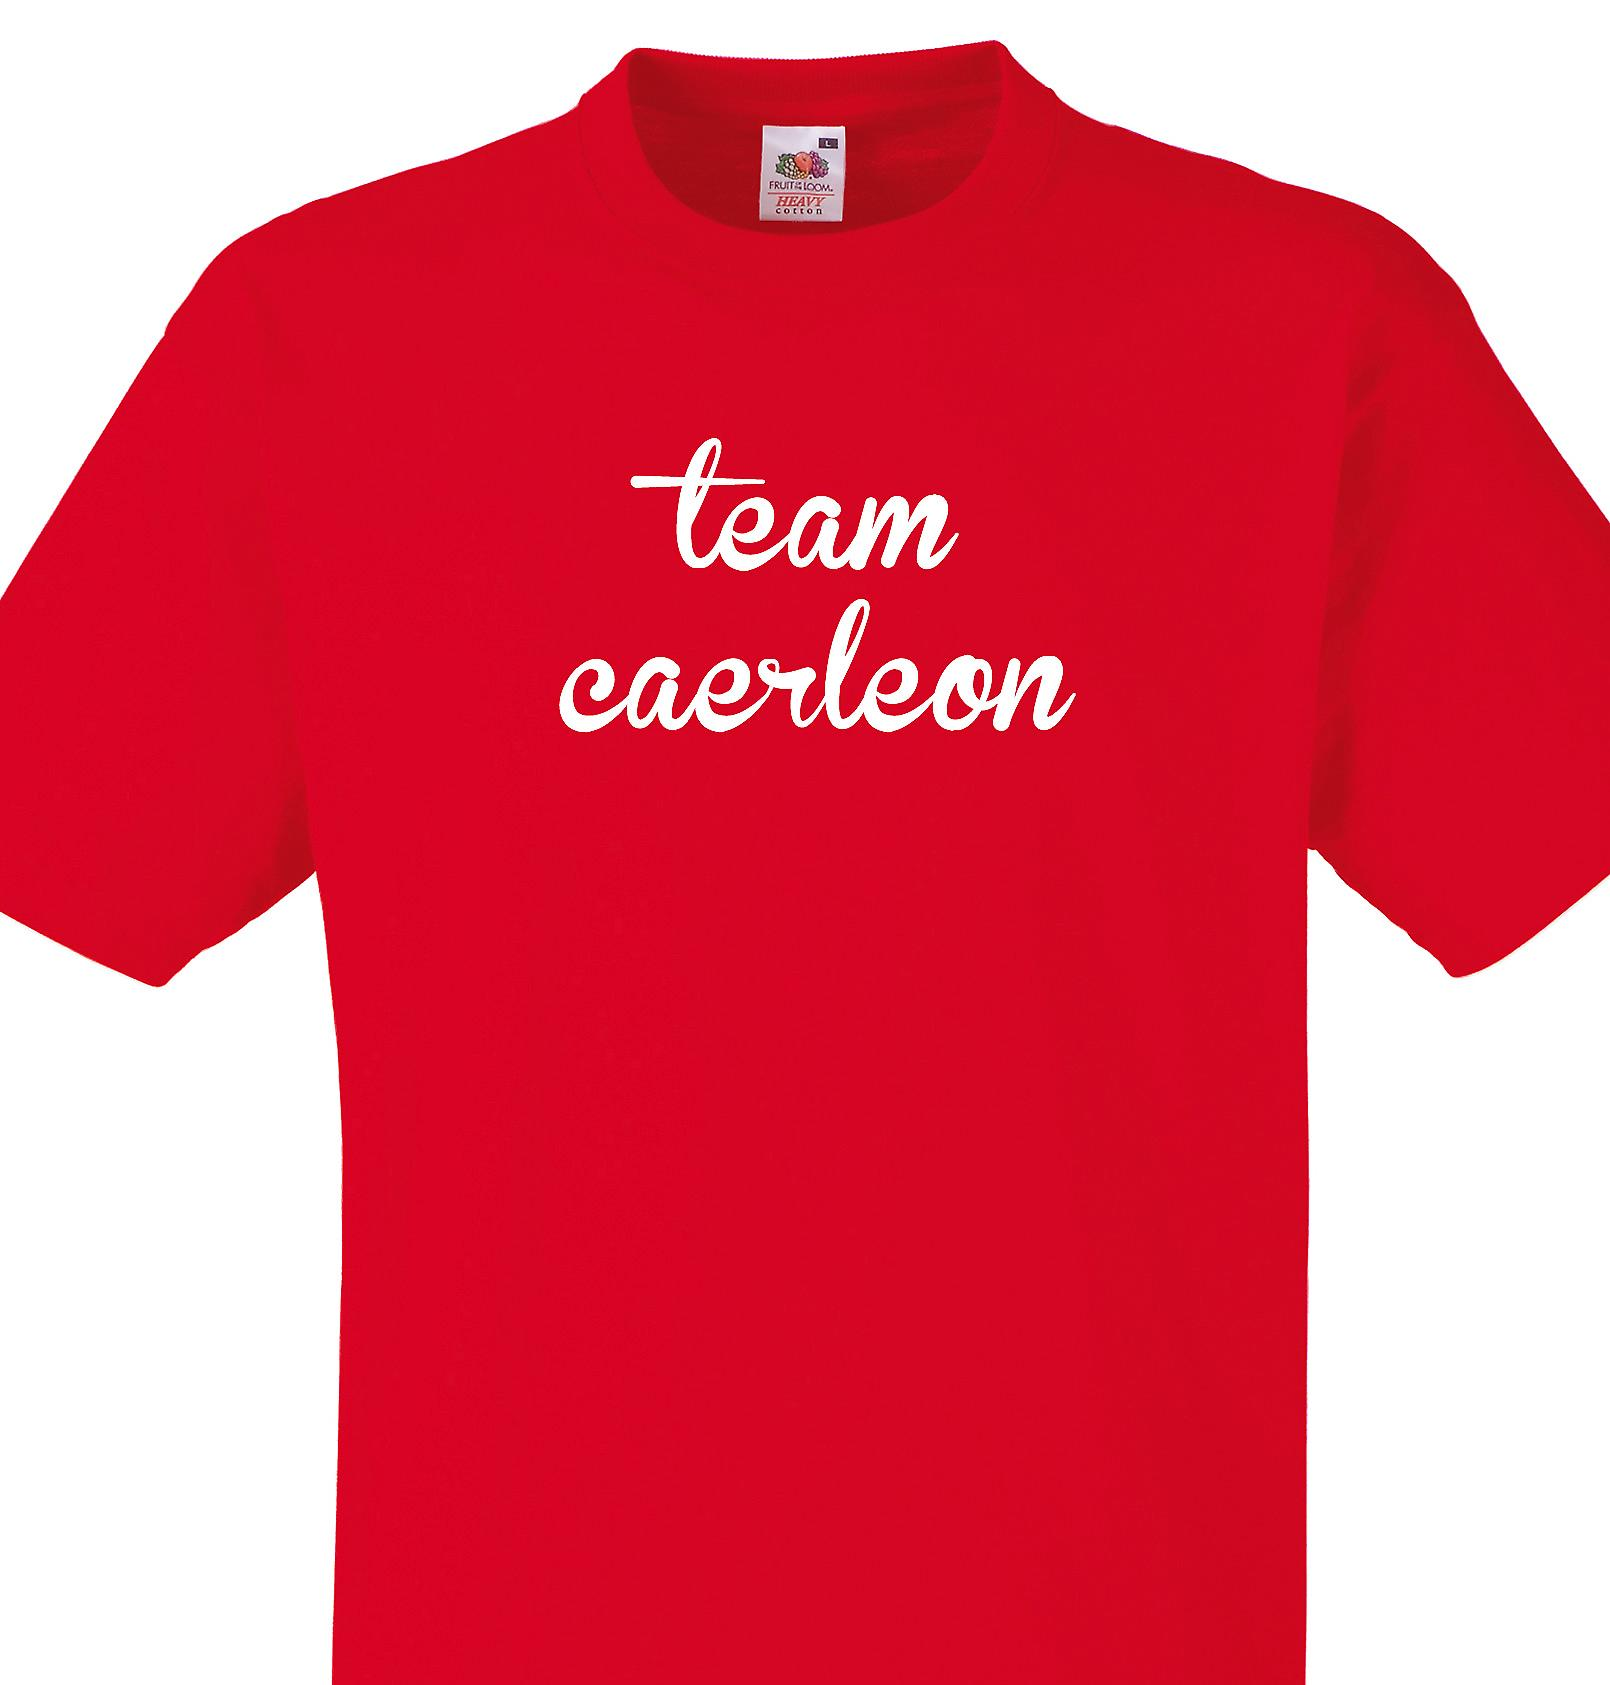 Team Caerleon Red T shirt